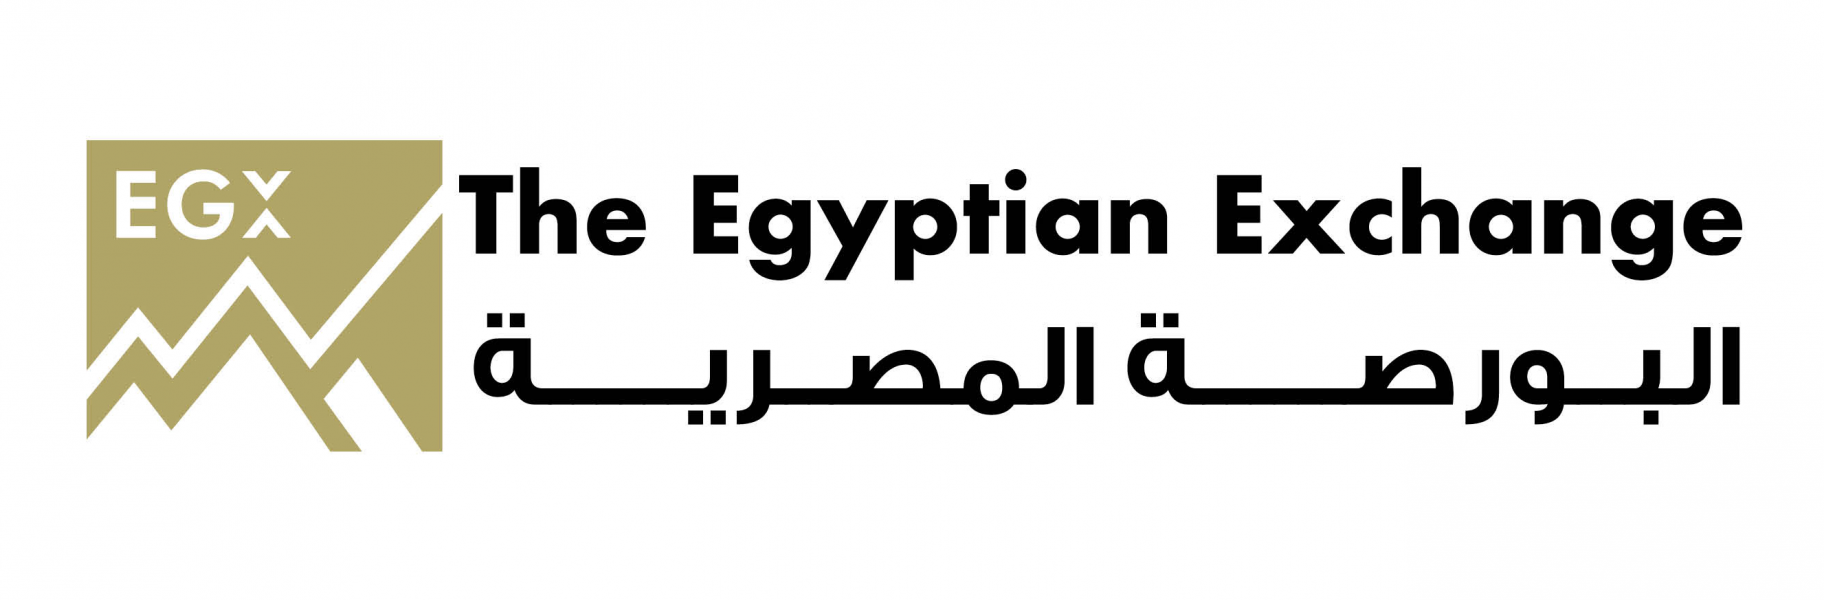 The-Egyptian-Exchange-Chairman-Lectures-Representa